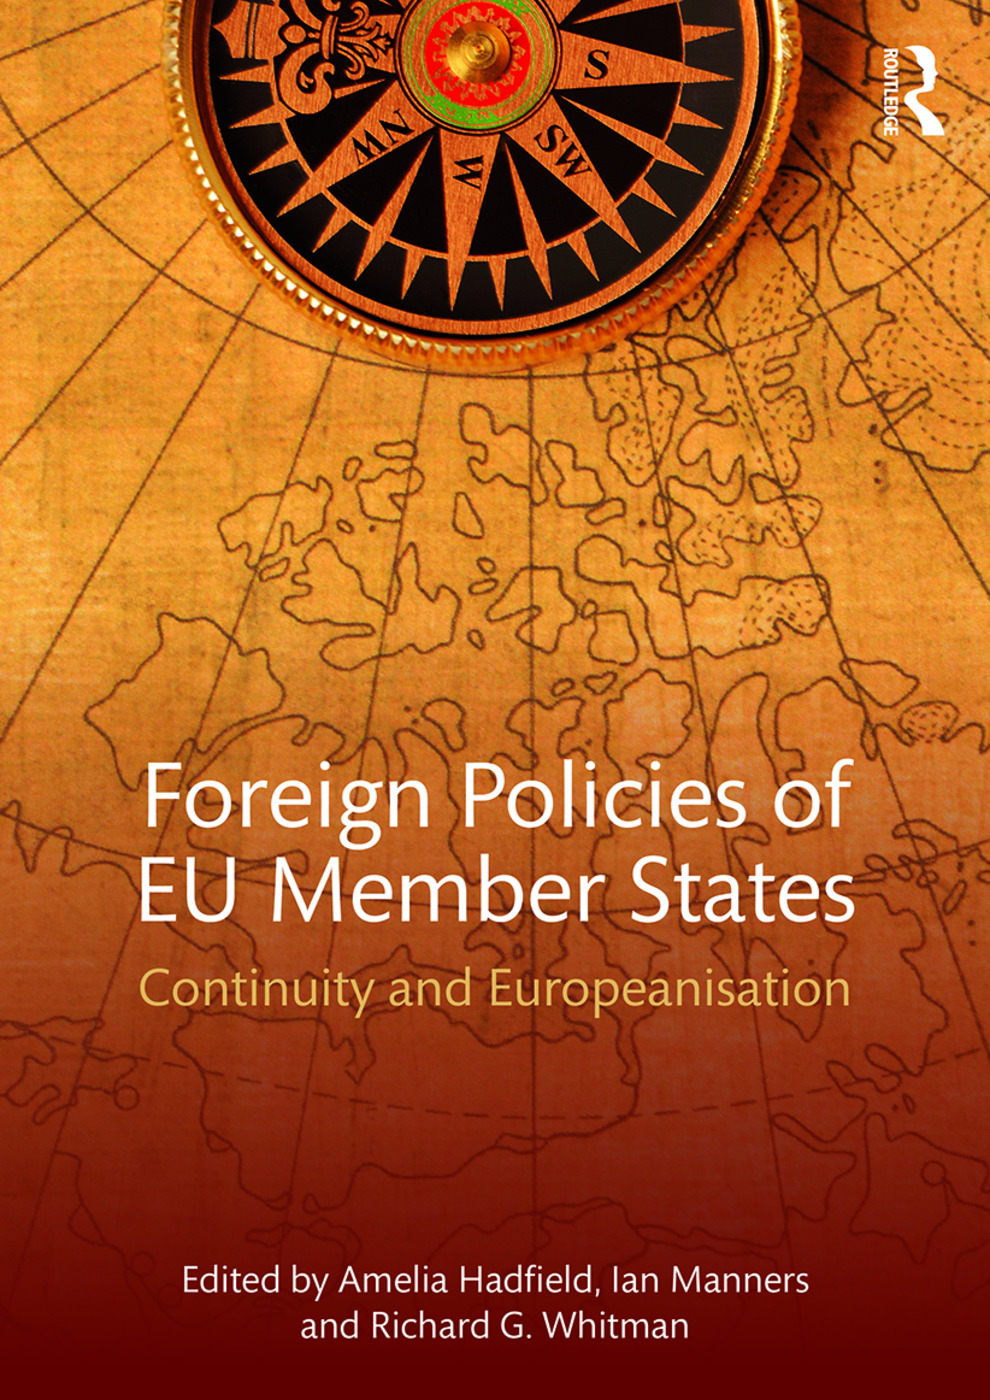 Foreign Policies of EU Member States: Continuity and Europeanisation book cover